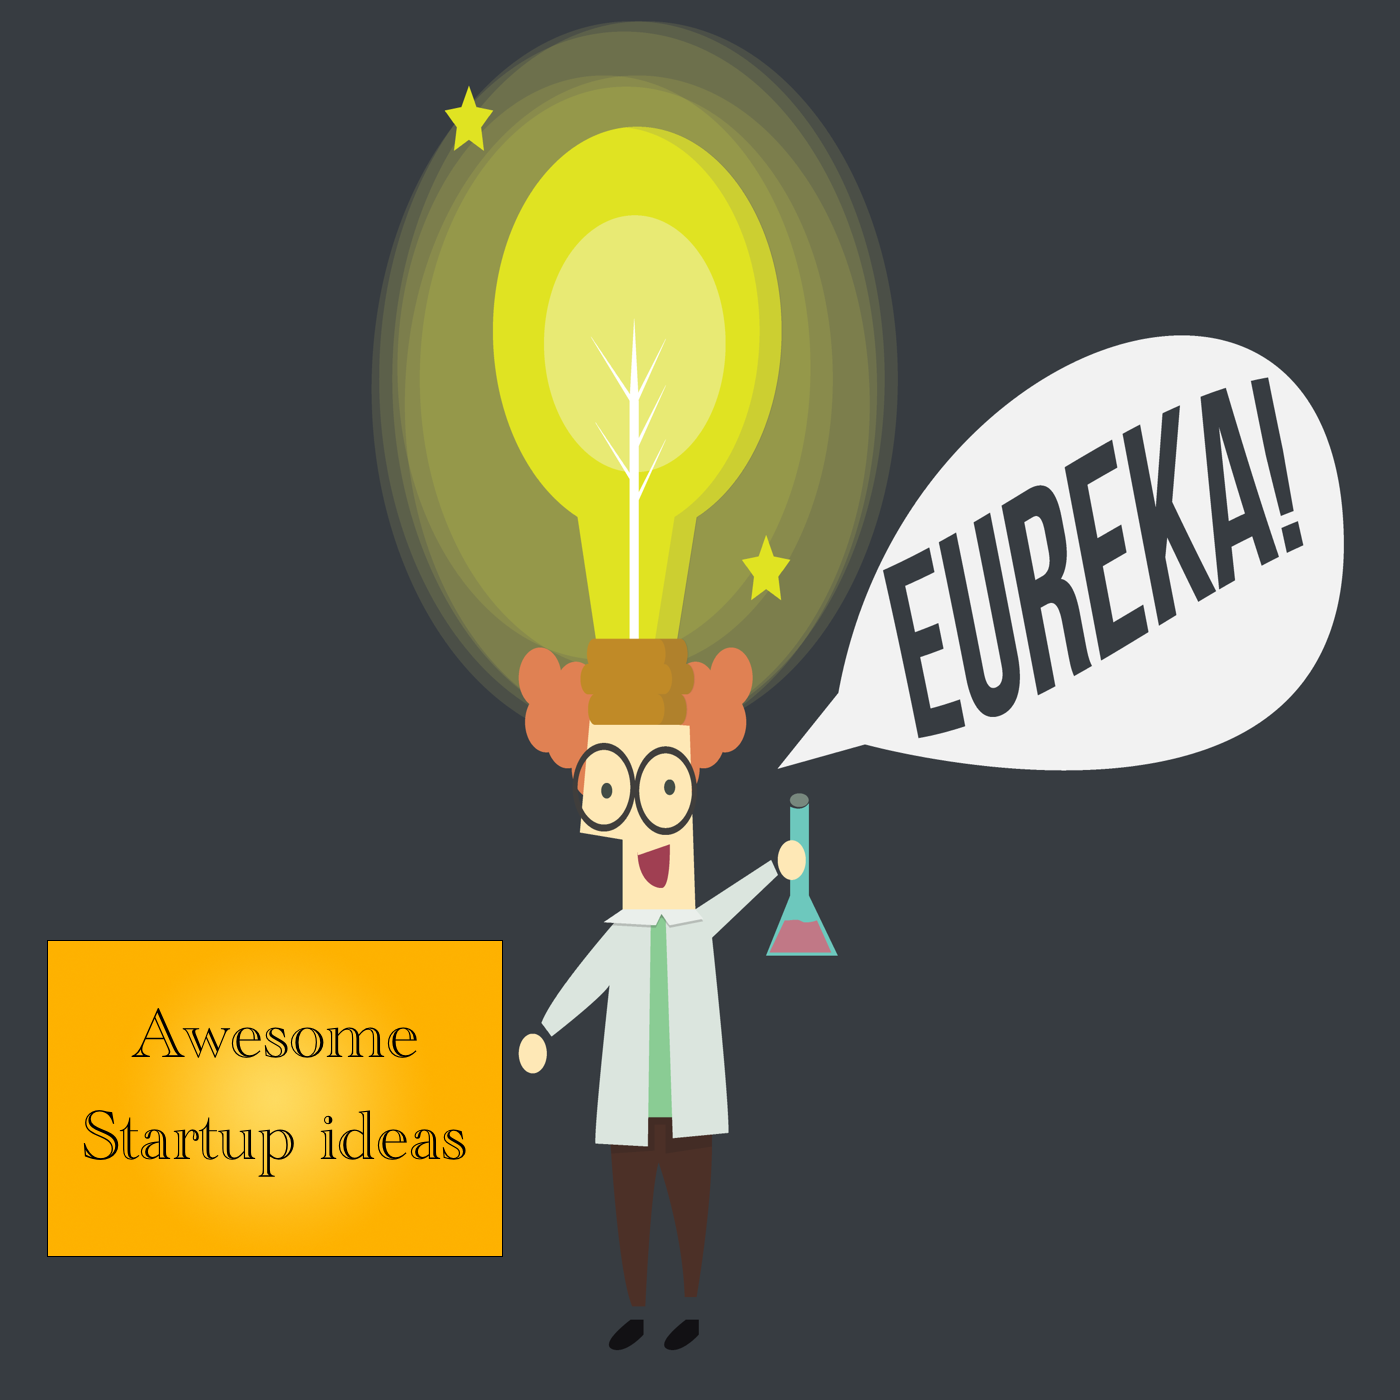 Stitcher For Awesome Via Listen Startup Podcasts Ideas